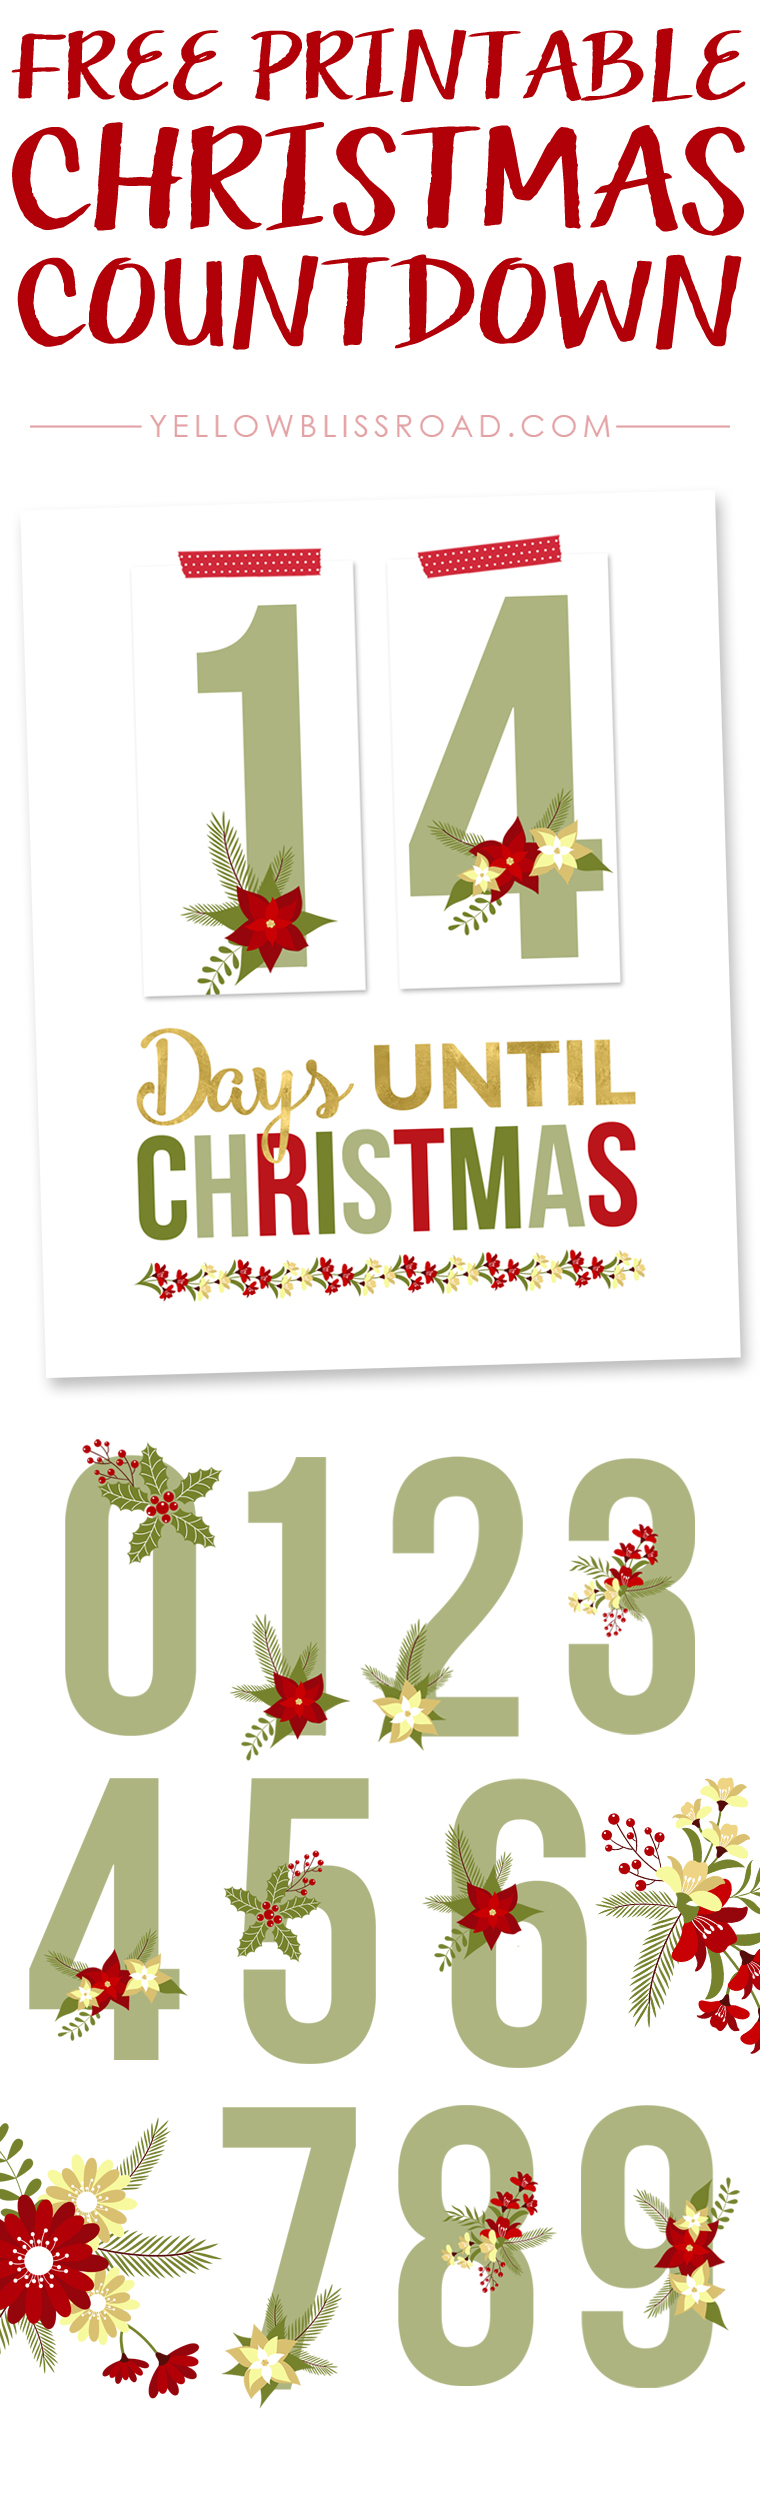 Free christmas countdown clipart png black and white stock Free Printable Christmas Countdown - Yellow Bliss Road png black and white stock